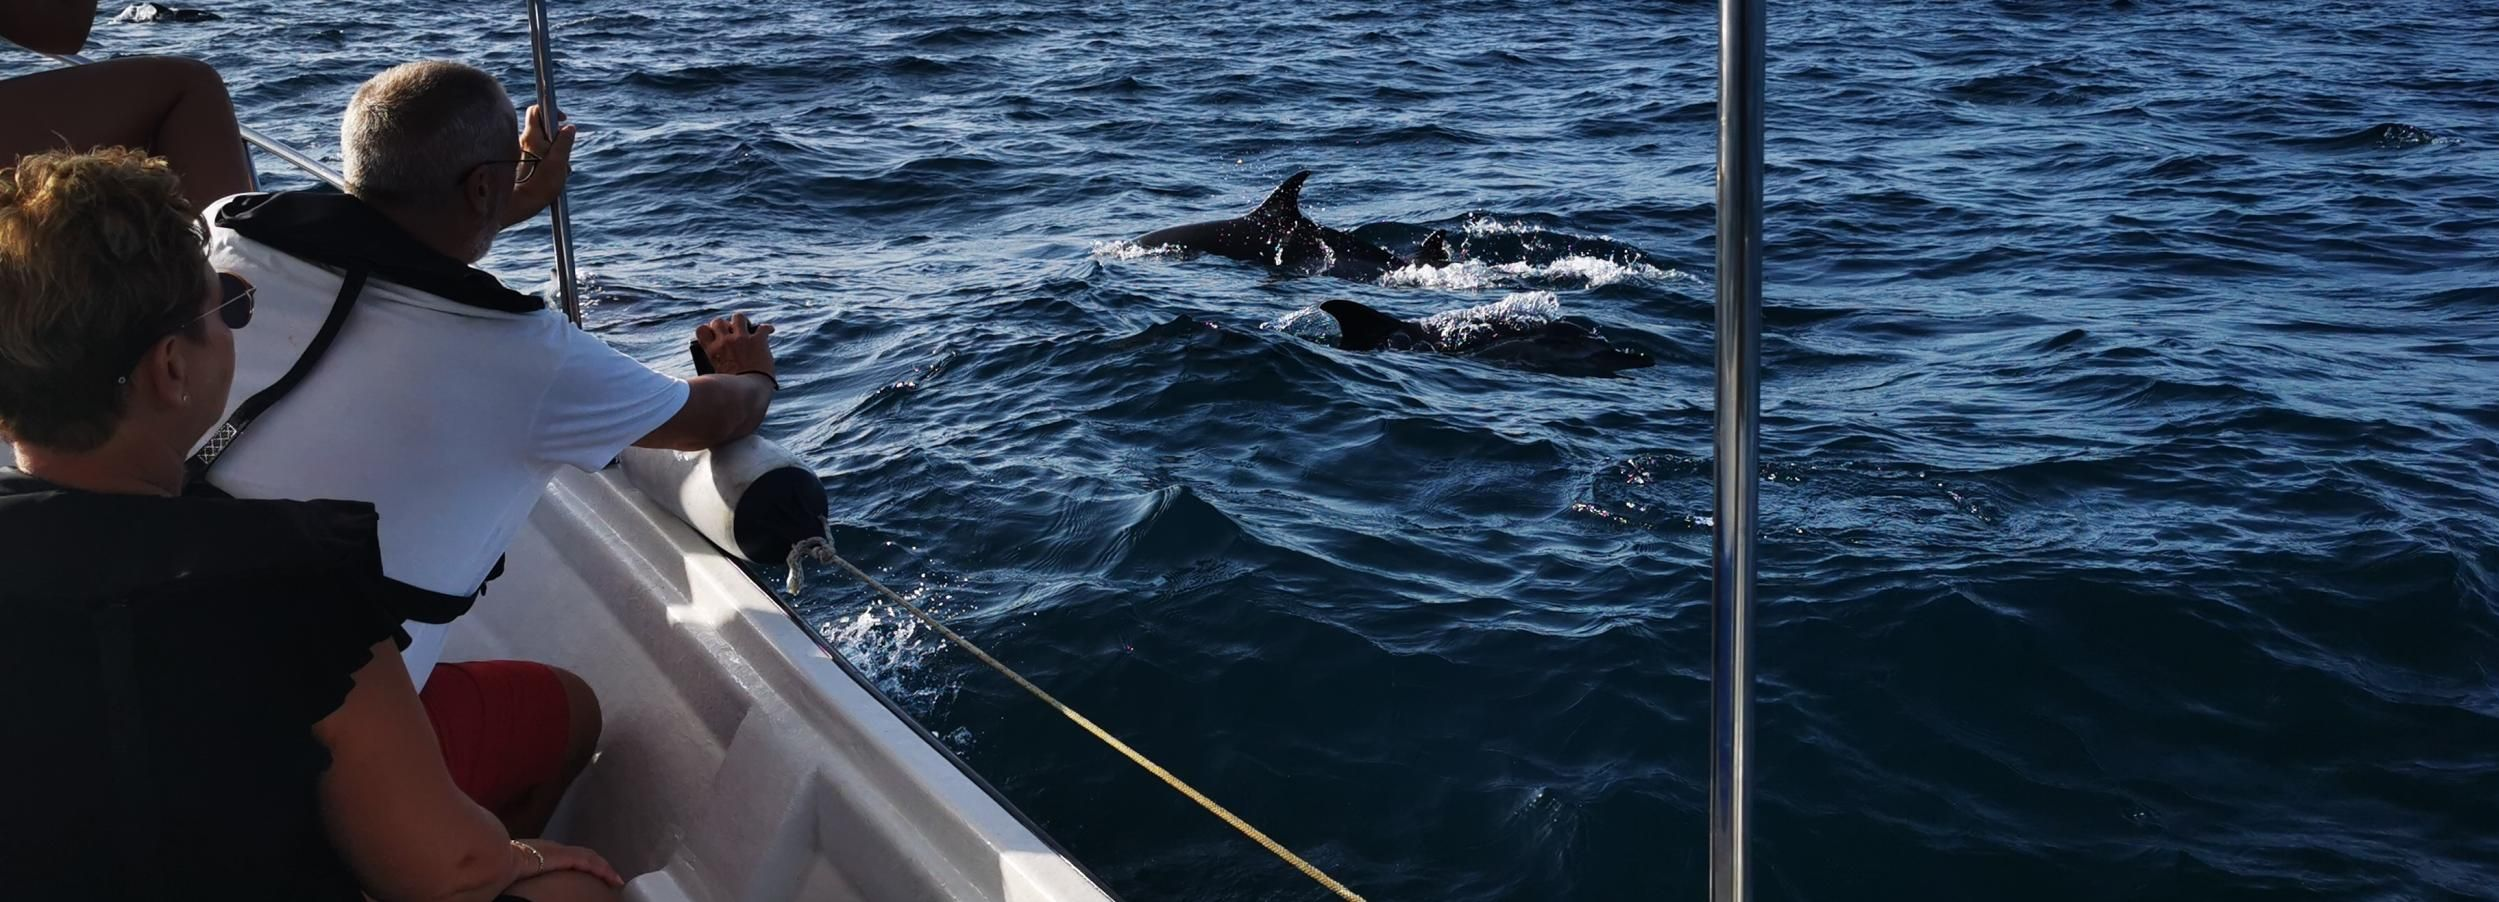 From Olhão: Dolphins and Sea Life Observation Tour